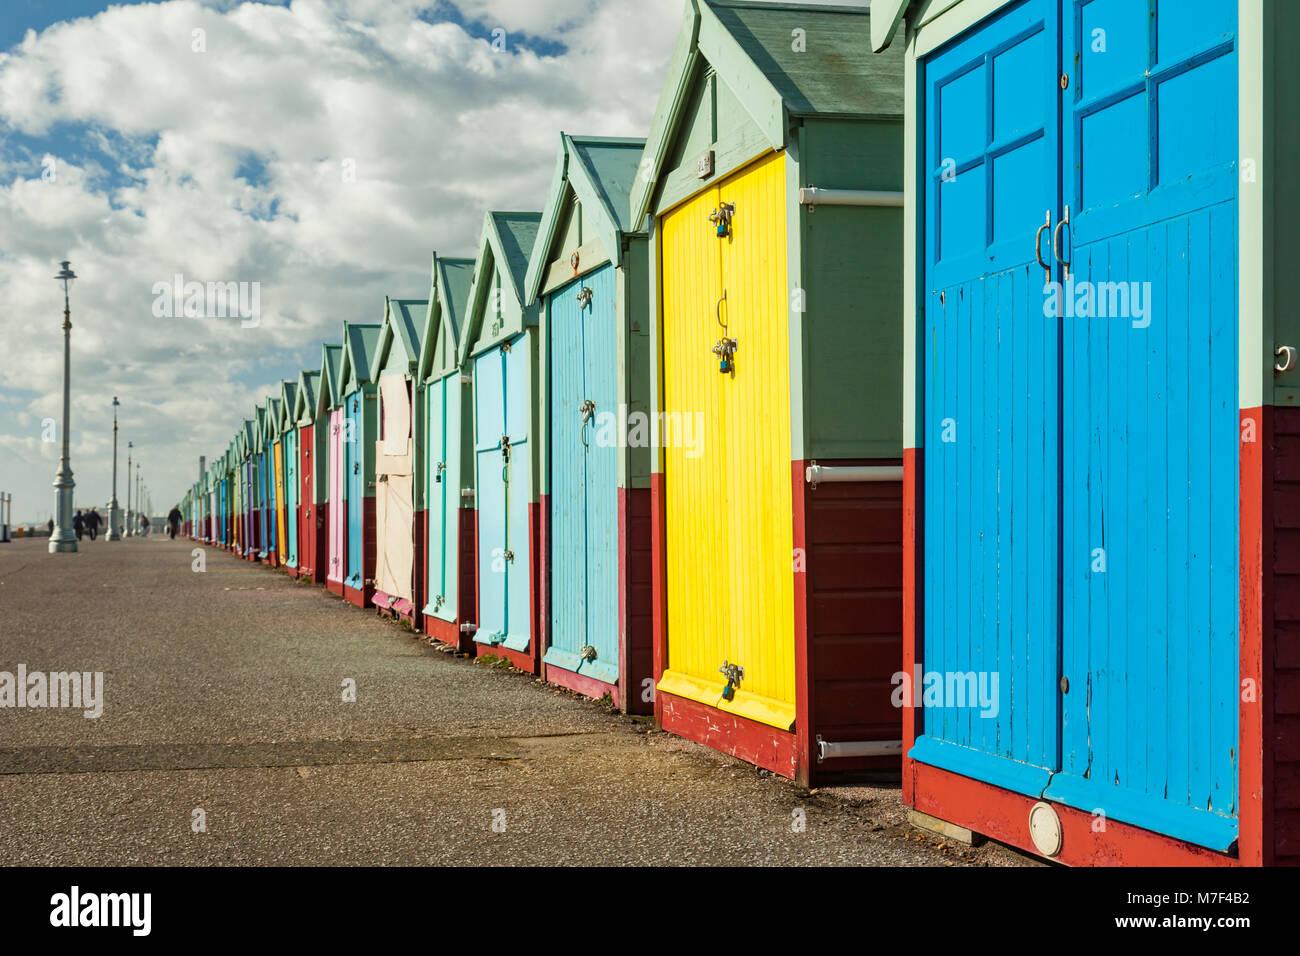 Multi-coloured beach huts on Hove seafront, UK. - Stock Image